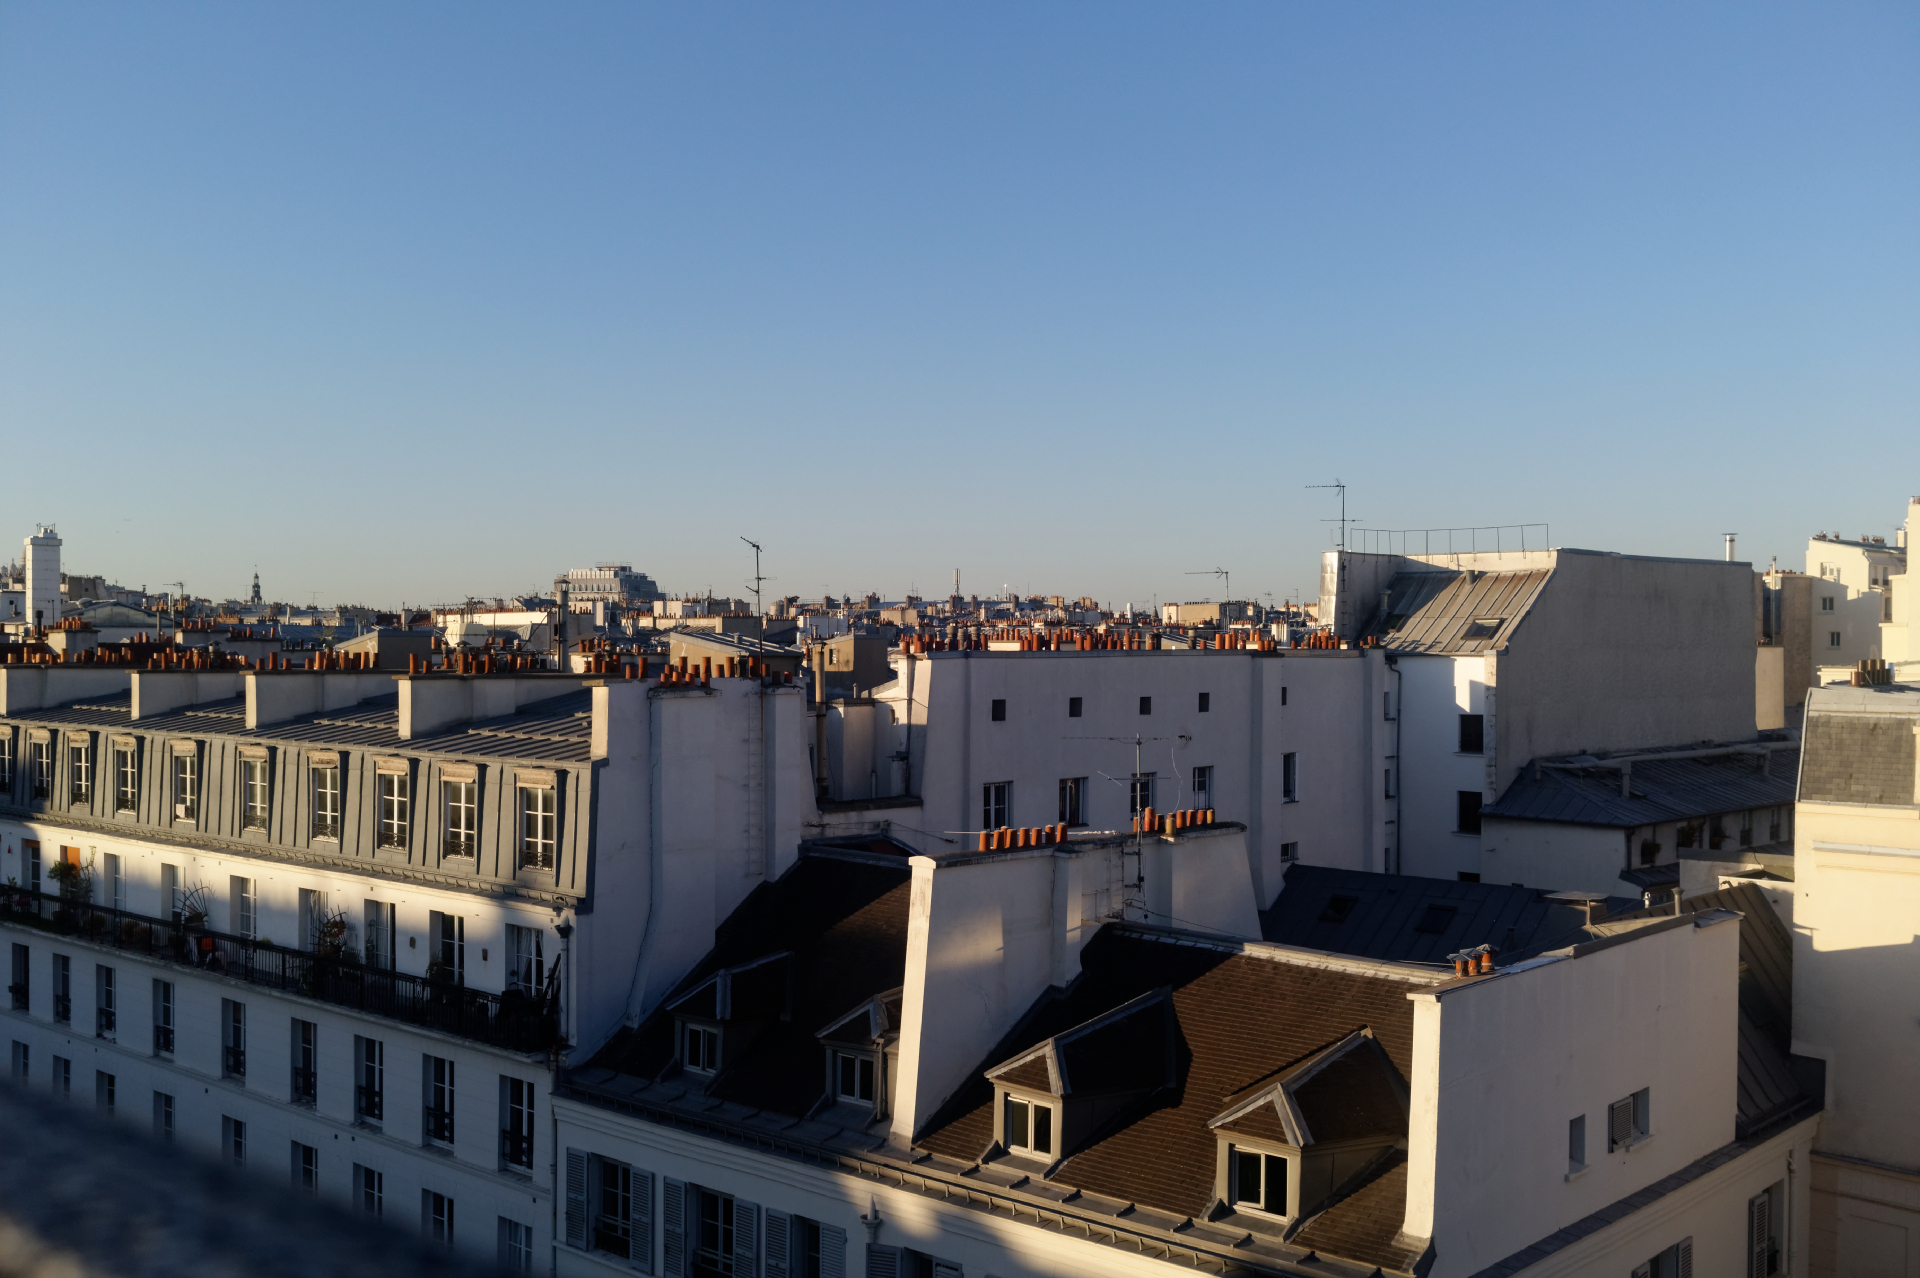 Rooftops in Paris image by ©akin abayomi